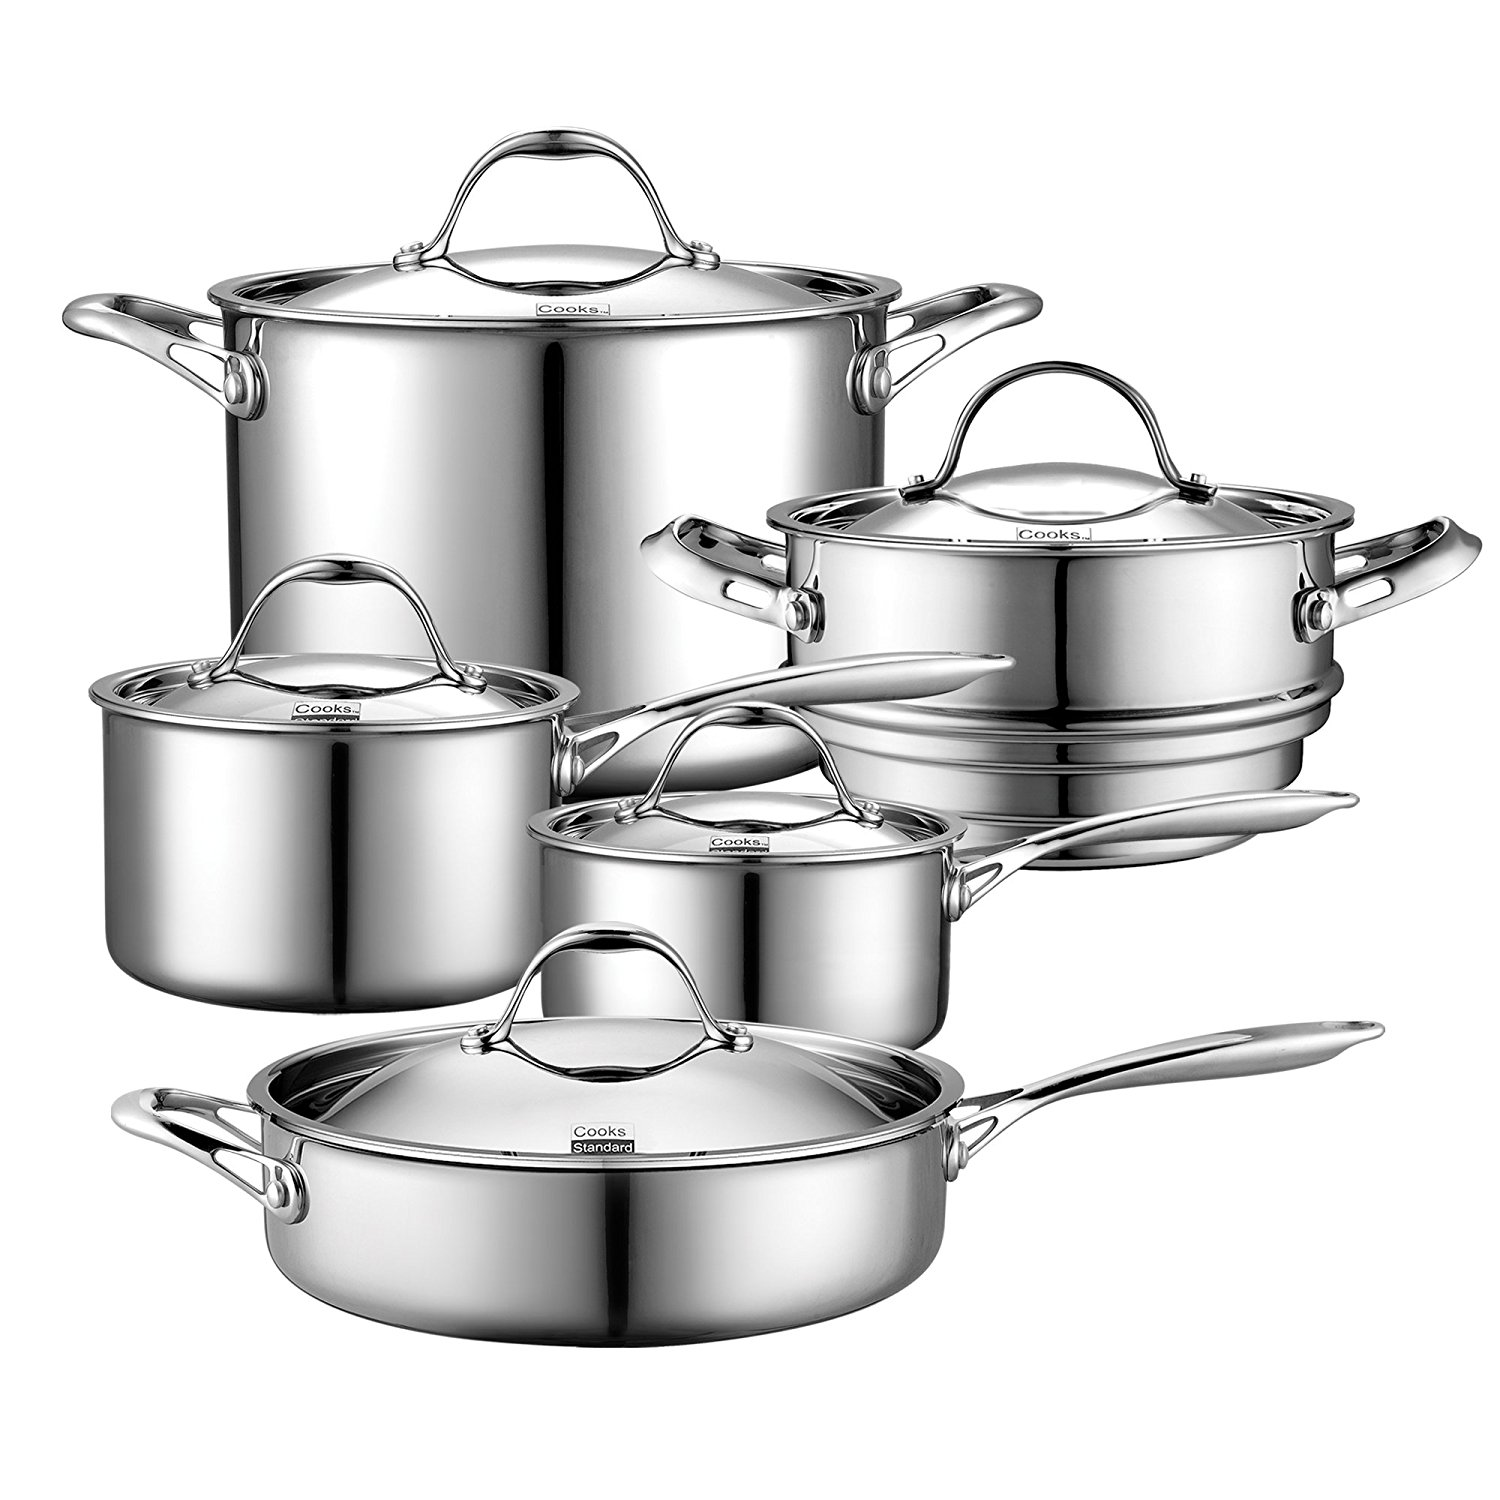 Cooks Standard 10 Piece Multi-Ply Clad Cookware Set Reviews